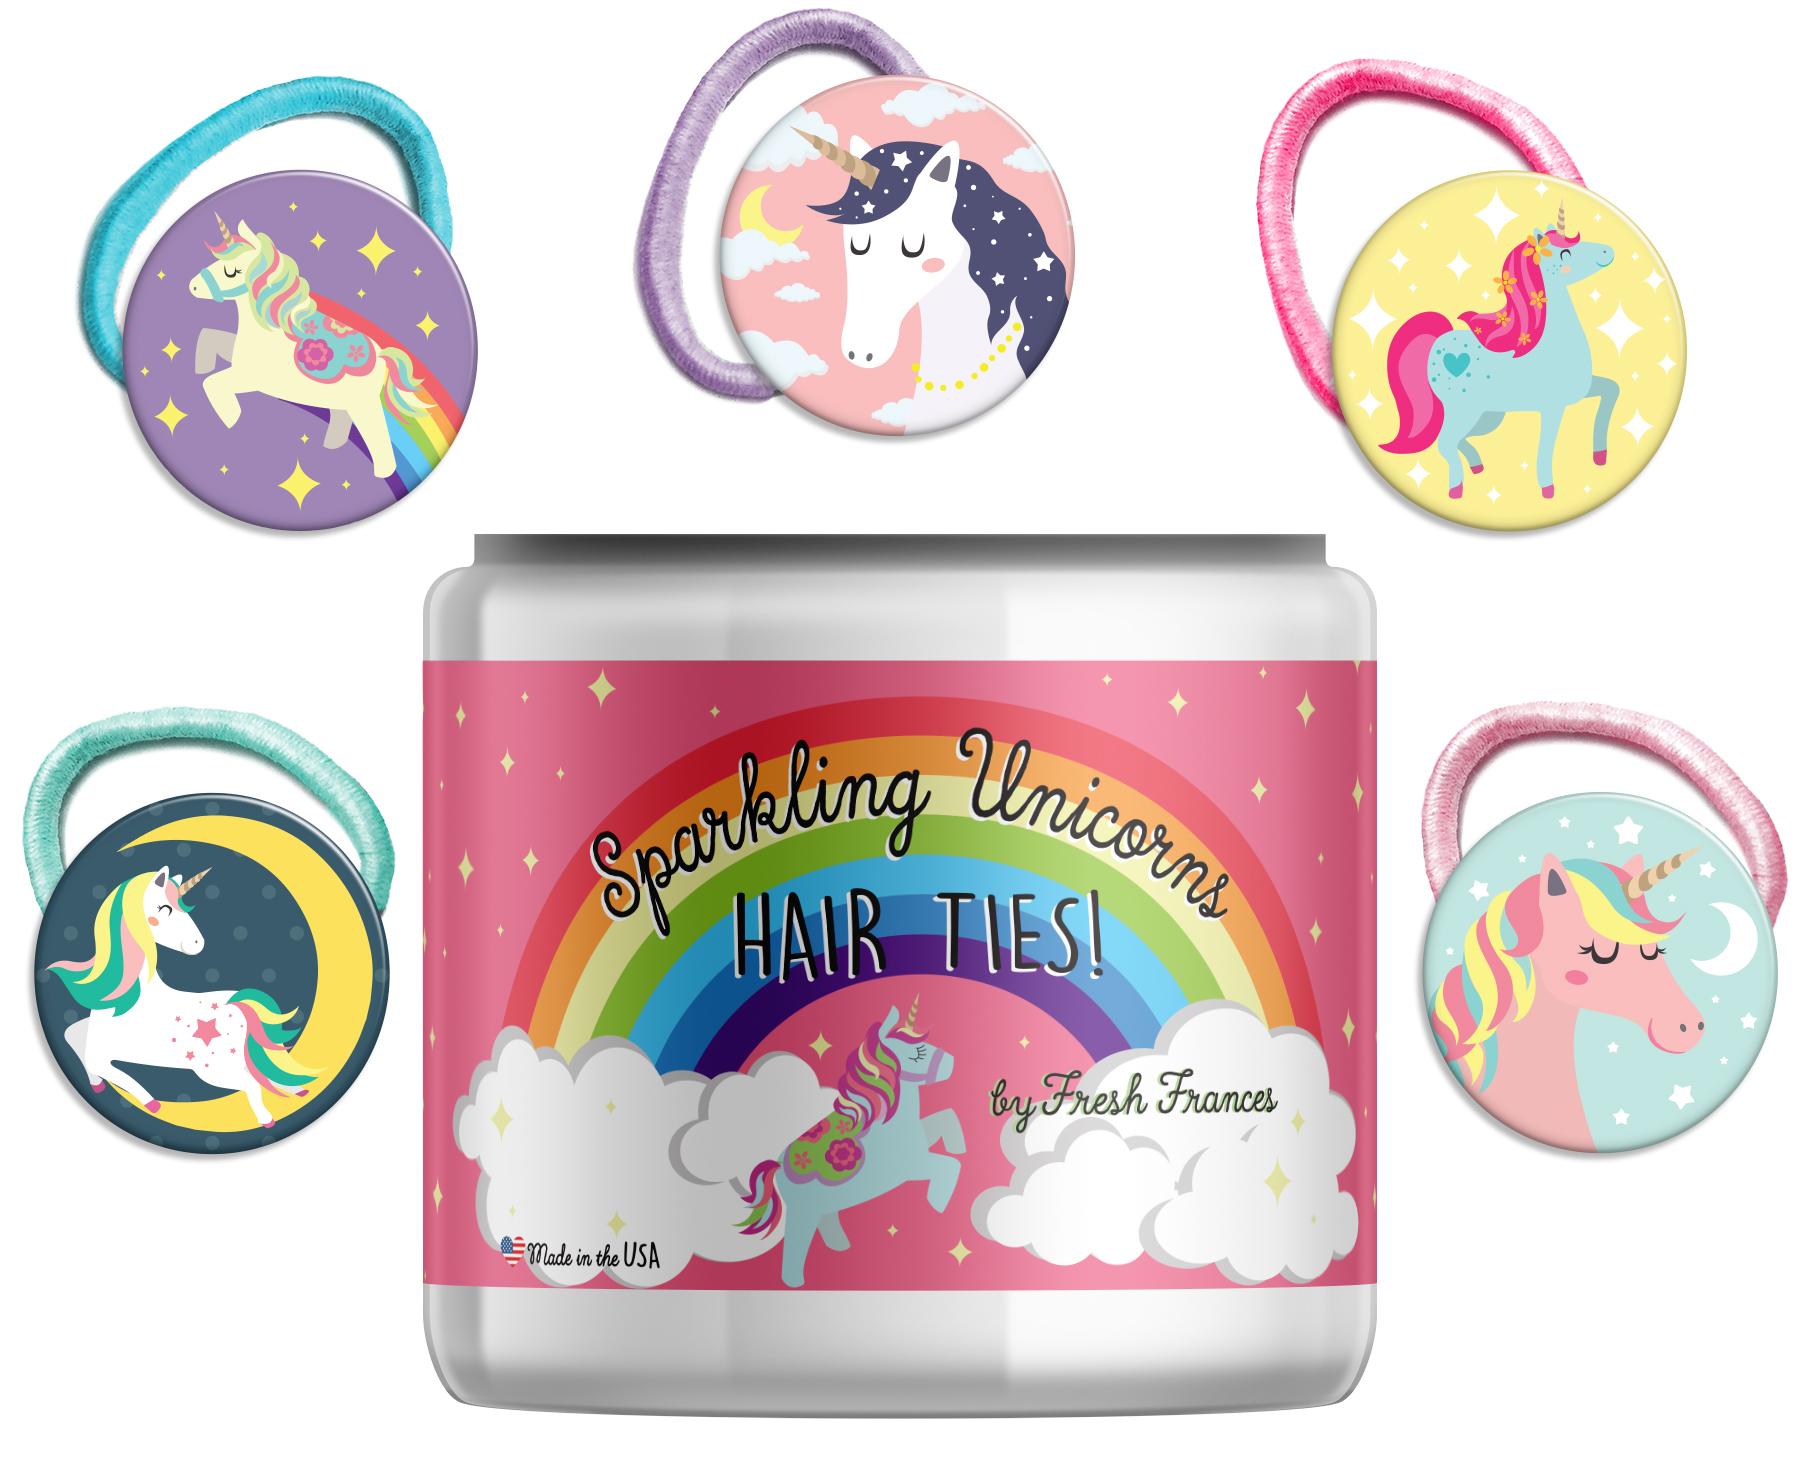 Sparkling Unicorn Hairties with Jar